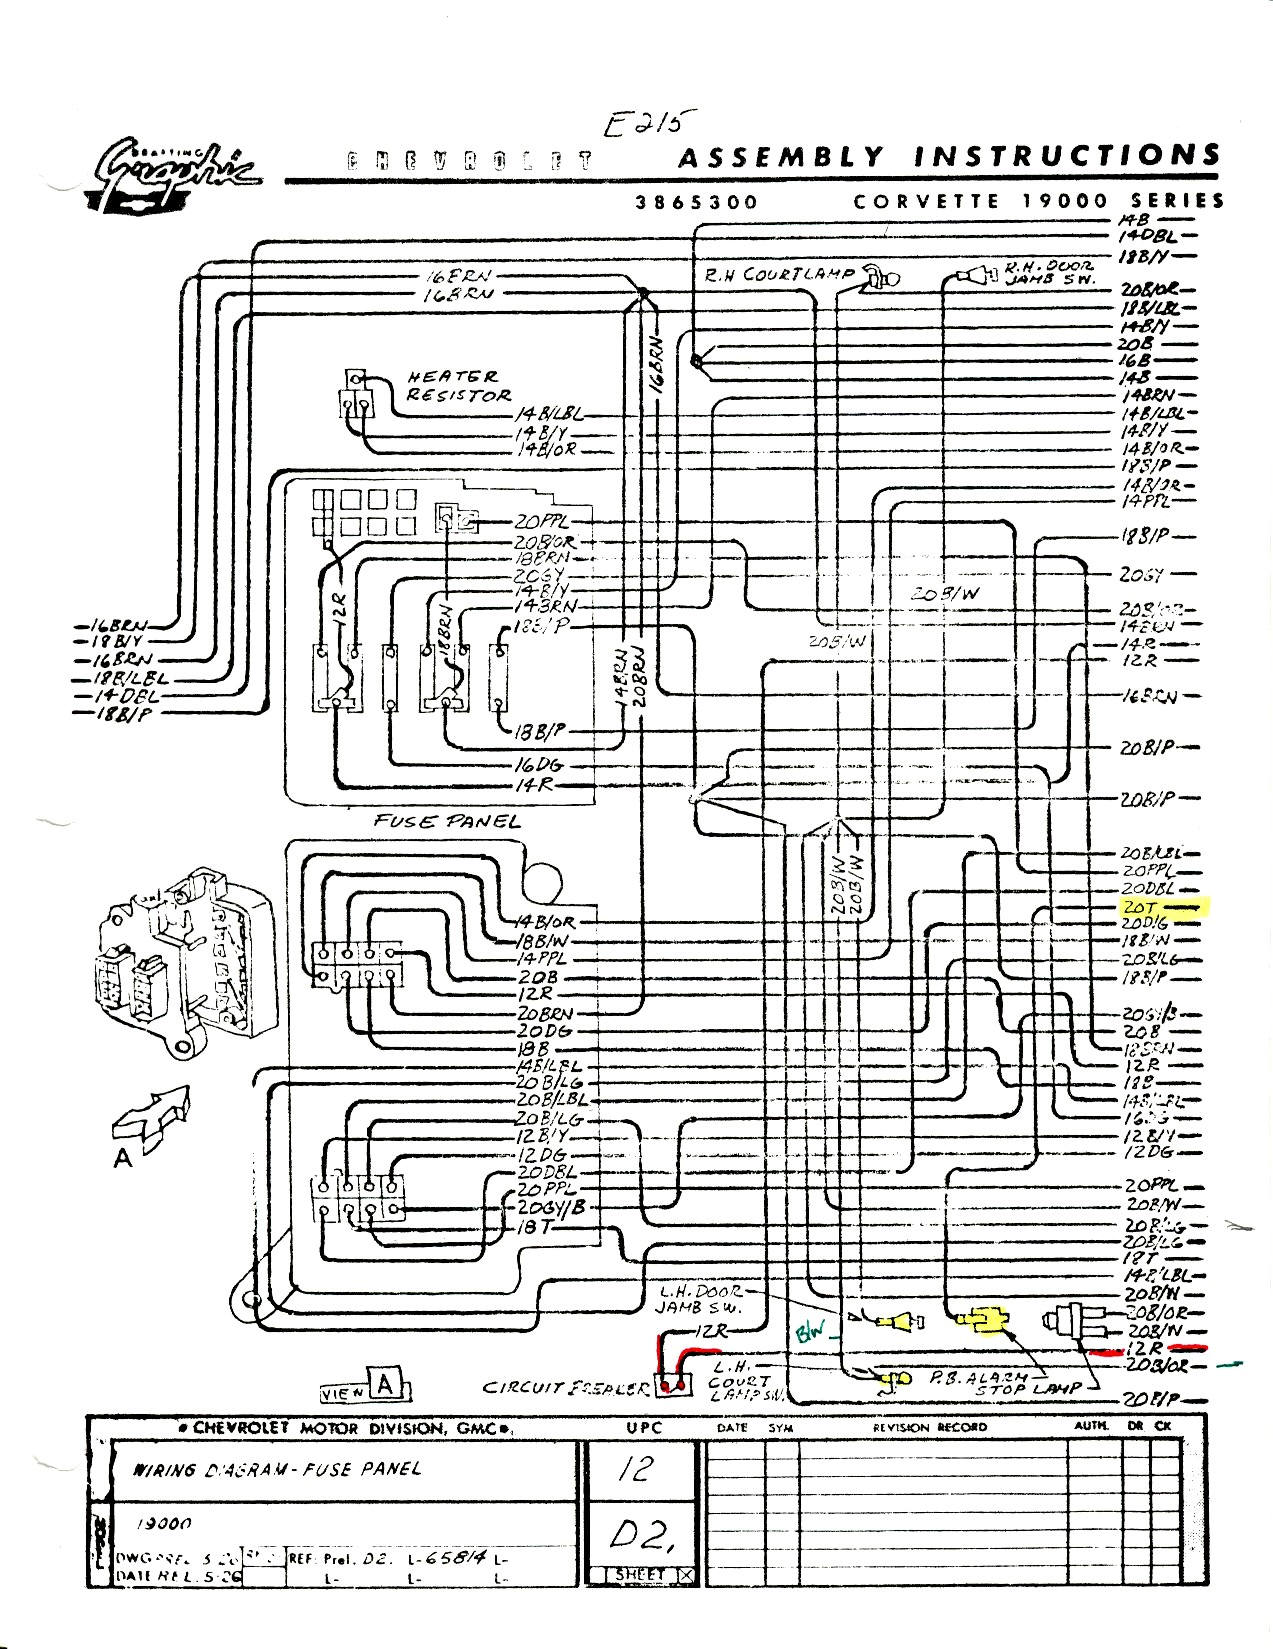 1976 corvette dash wiring diagram hotpoint tumble dryer somurich